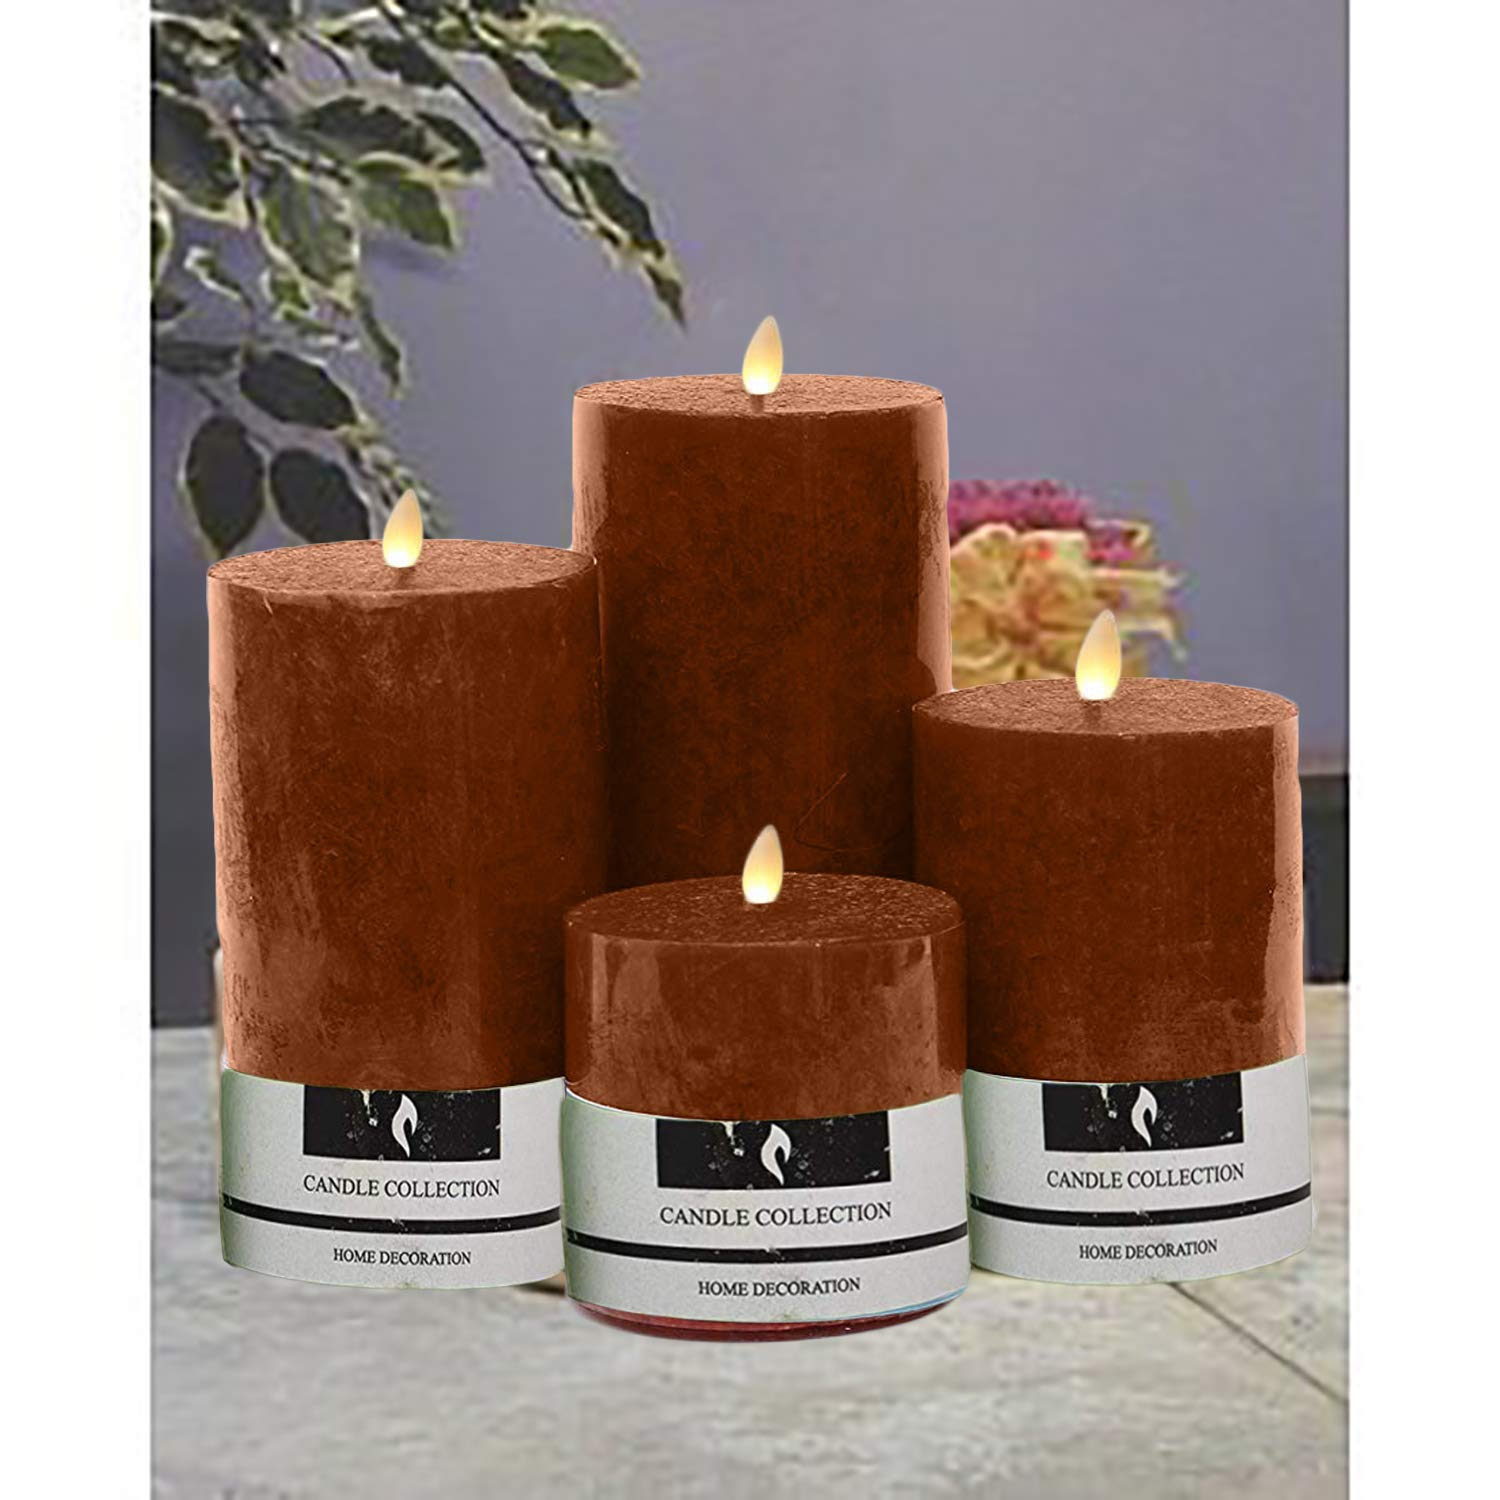 Marigold Stores Decorative Aromatic Coffee Scented Candles/Pillar Candles/Candle Set Size 4.5''X2'', 3.5''X2'', 3''X 2'' and 2''X2''. - Set of 4 by Marigold Stores